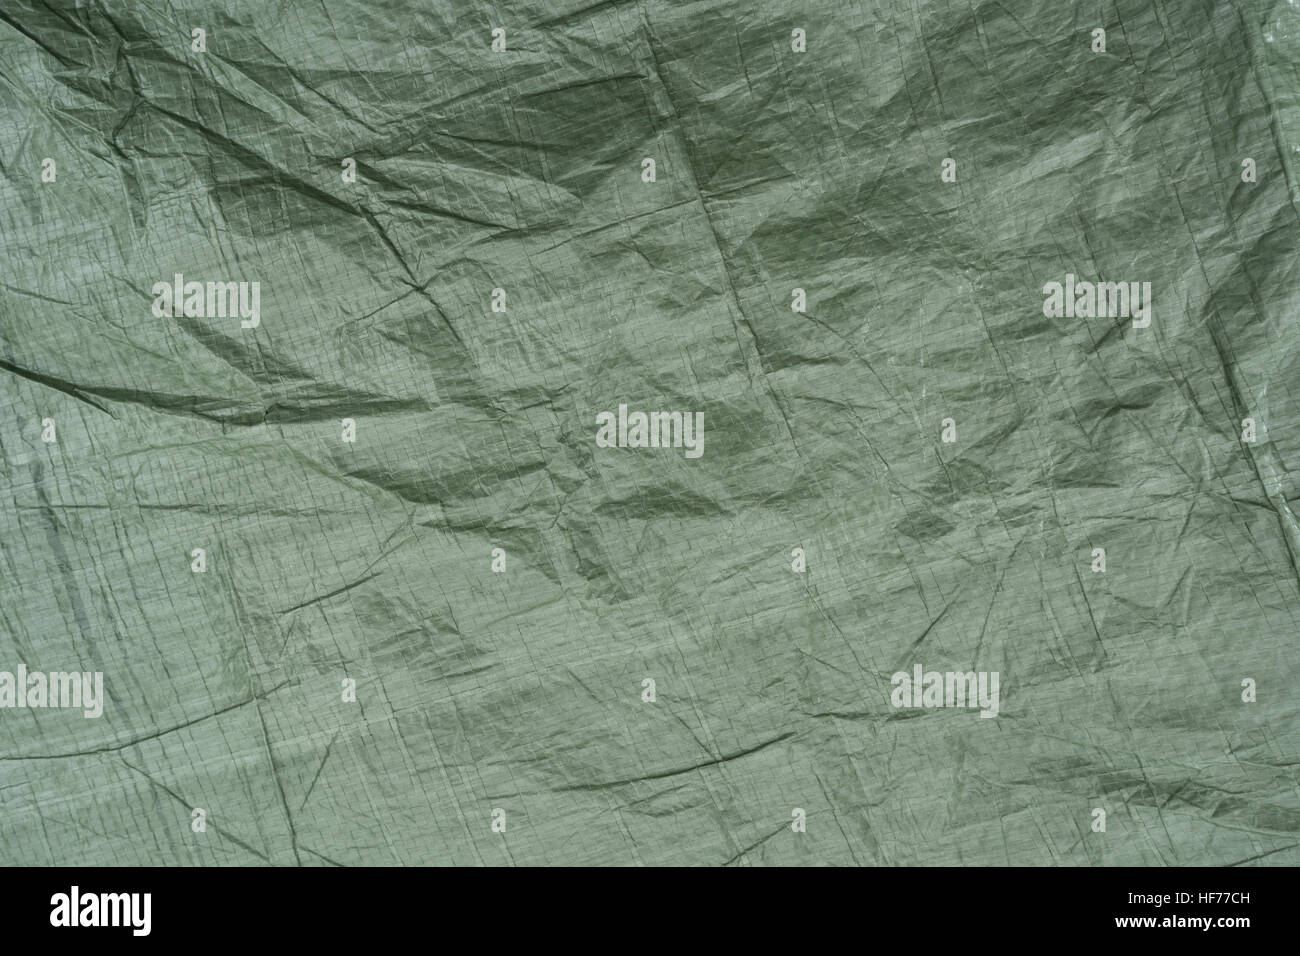 Section of green camouflage ground sheet material. - Stock Image